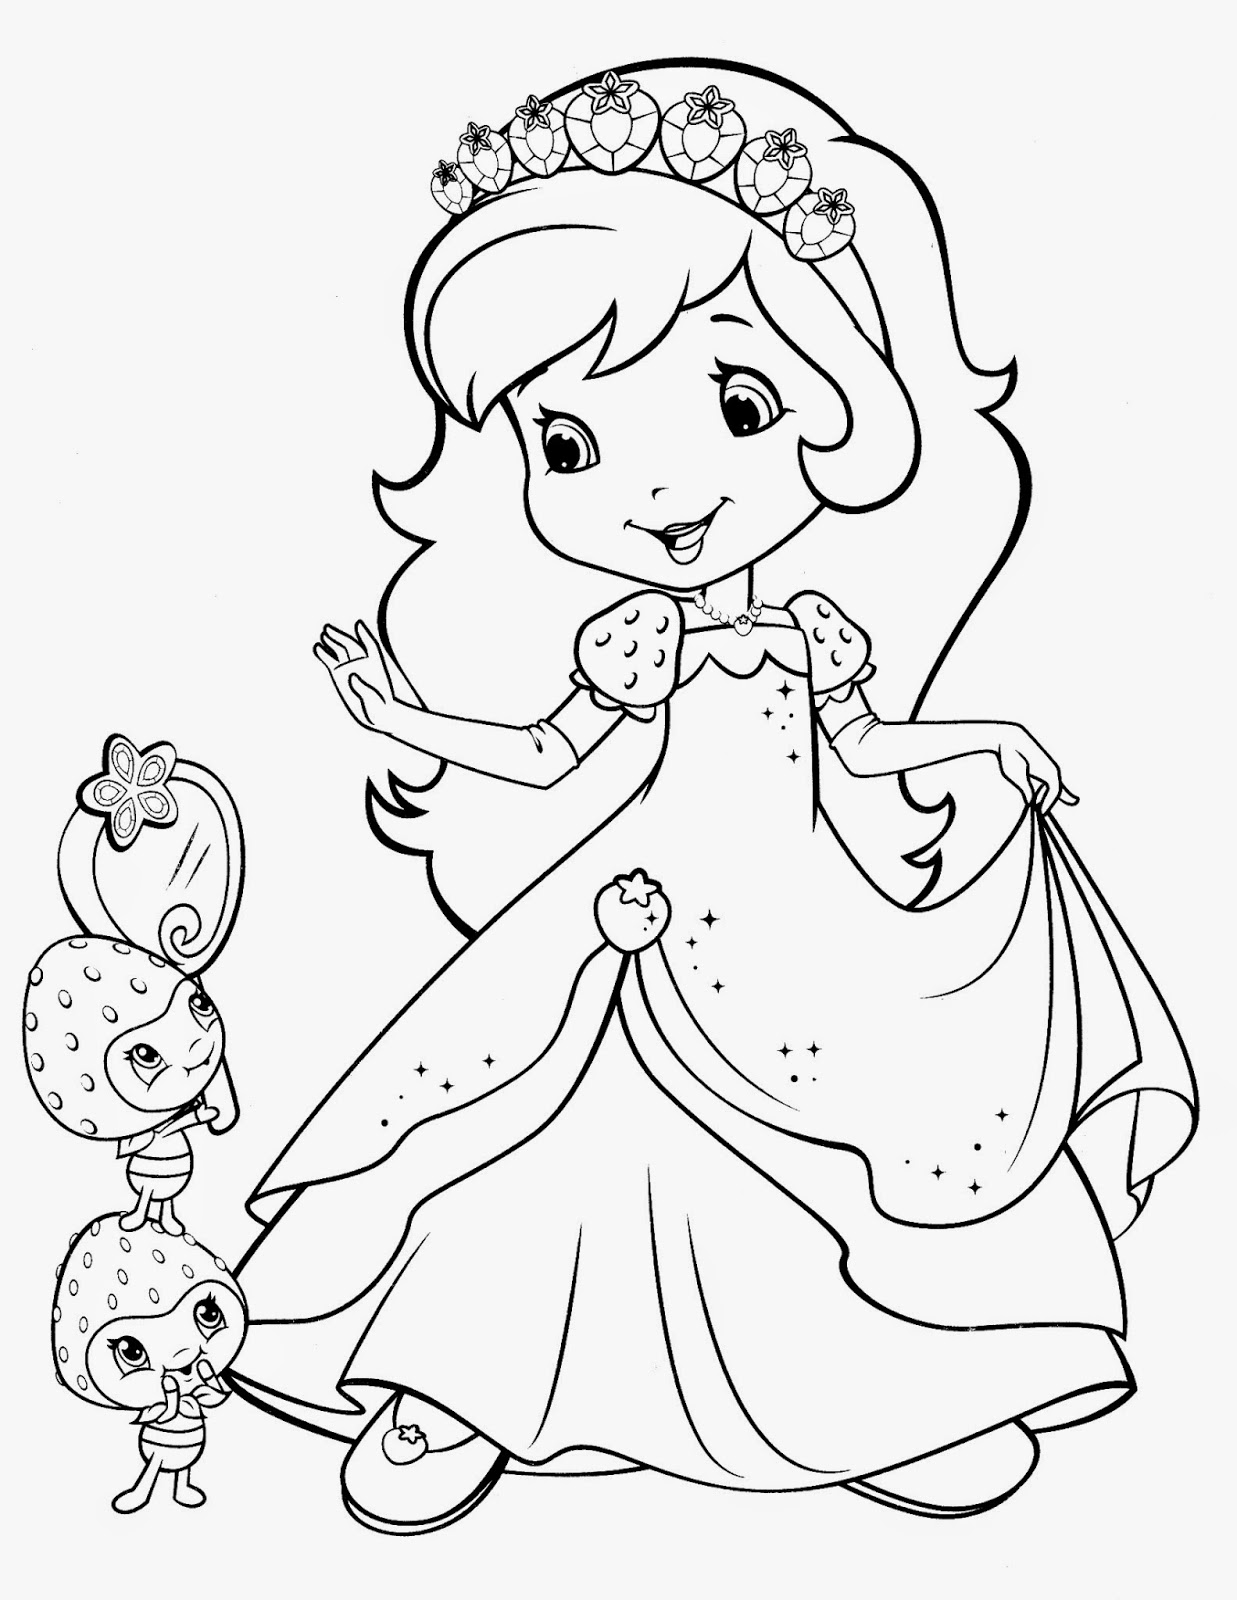 strawberry shortcake coloring pages online - photo#5